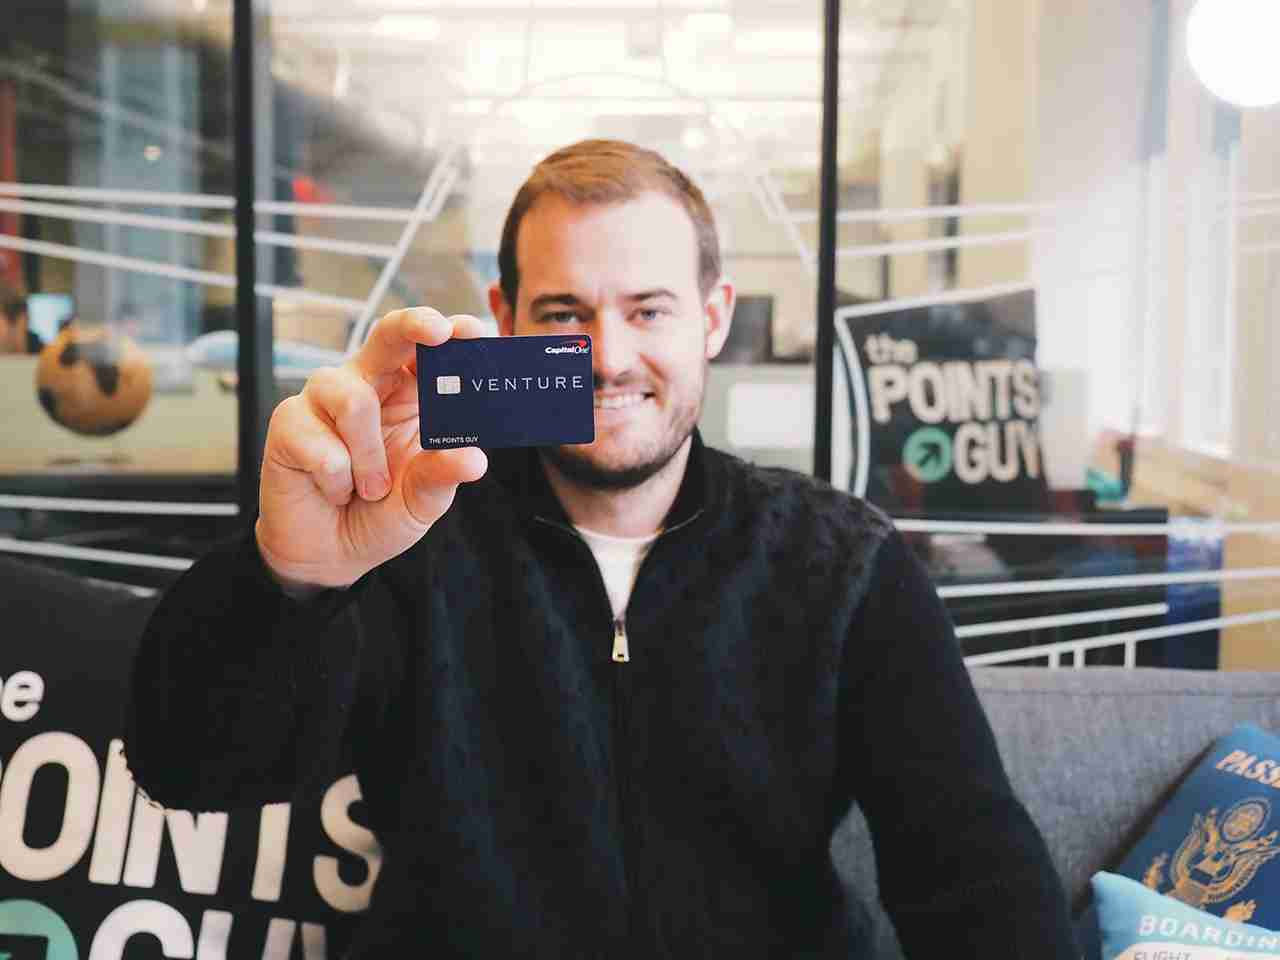 Brian Kelly with Capital One Venture card